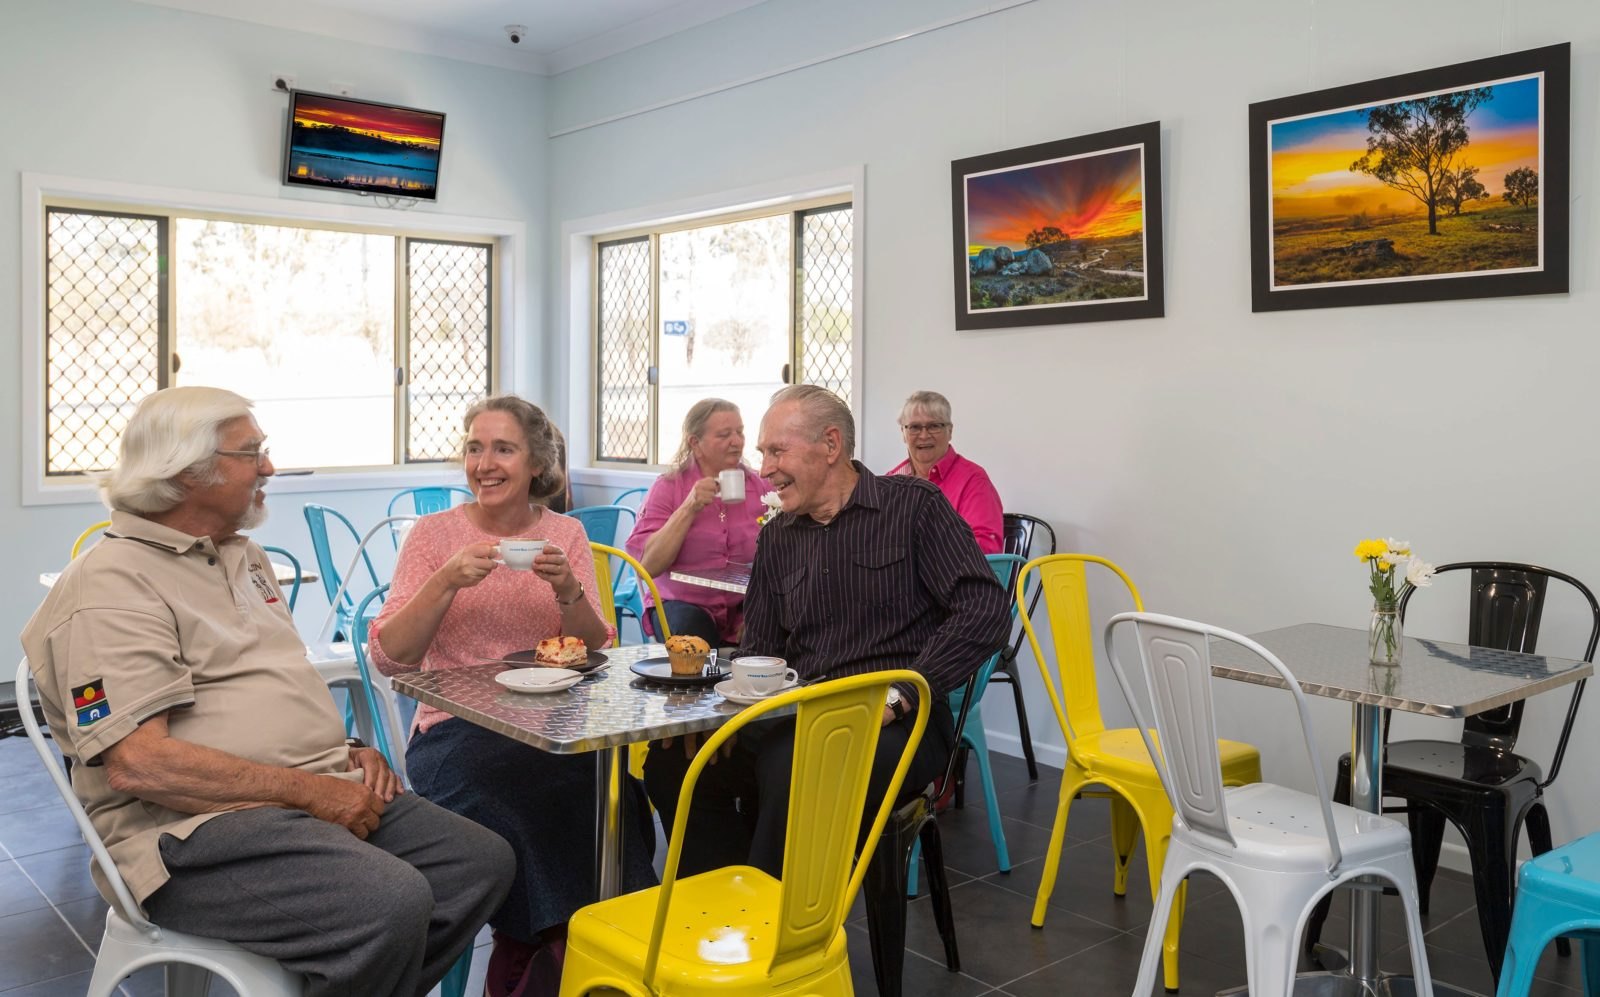 Gawura Cafe offers morning and afternoon teas and light lunches